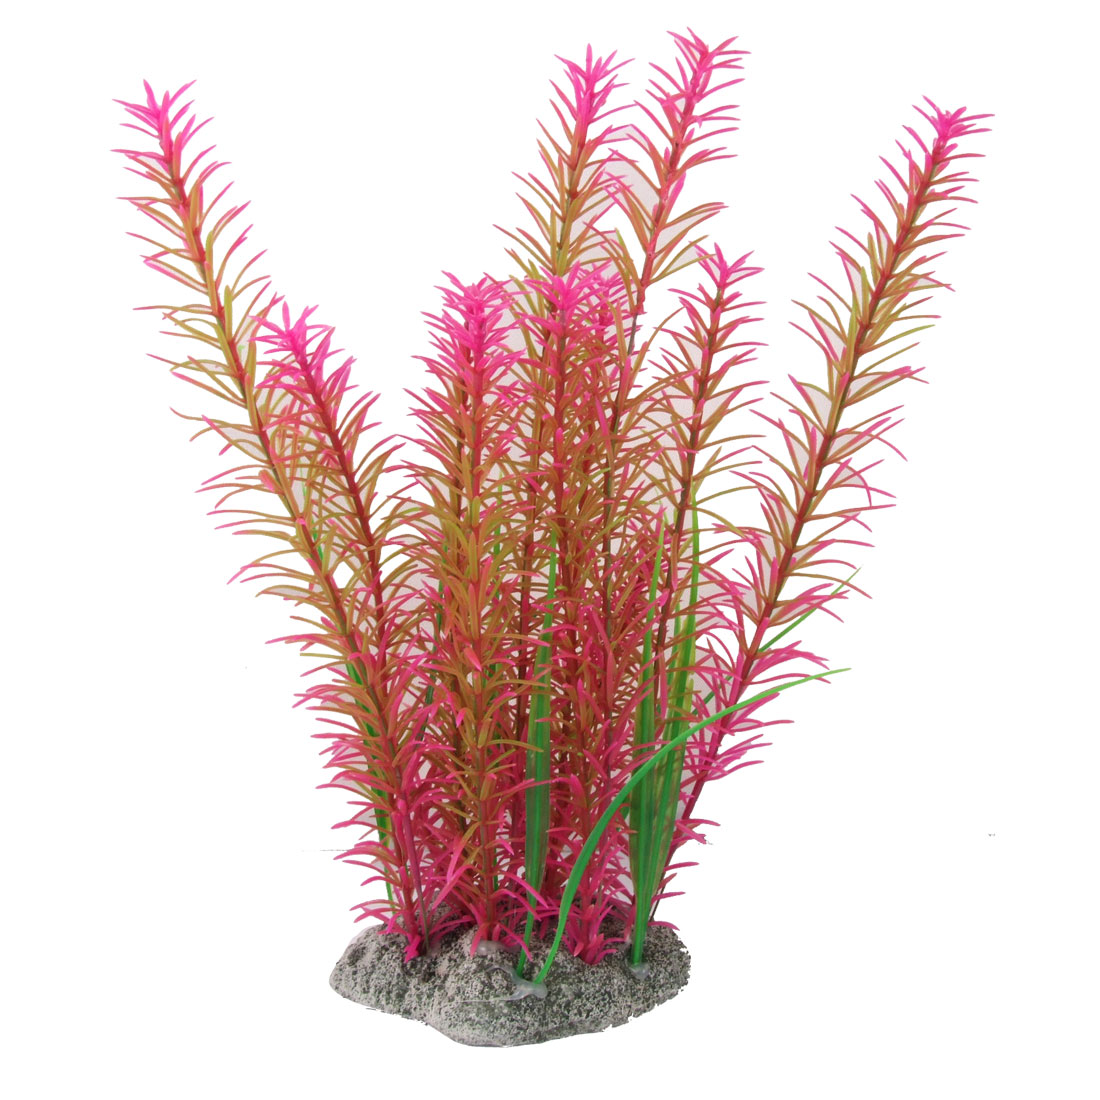 Aquarium Fuchsia Green Needle Shaped Leaf Ariticial Plastic Plants